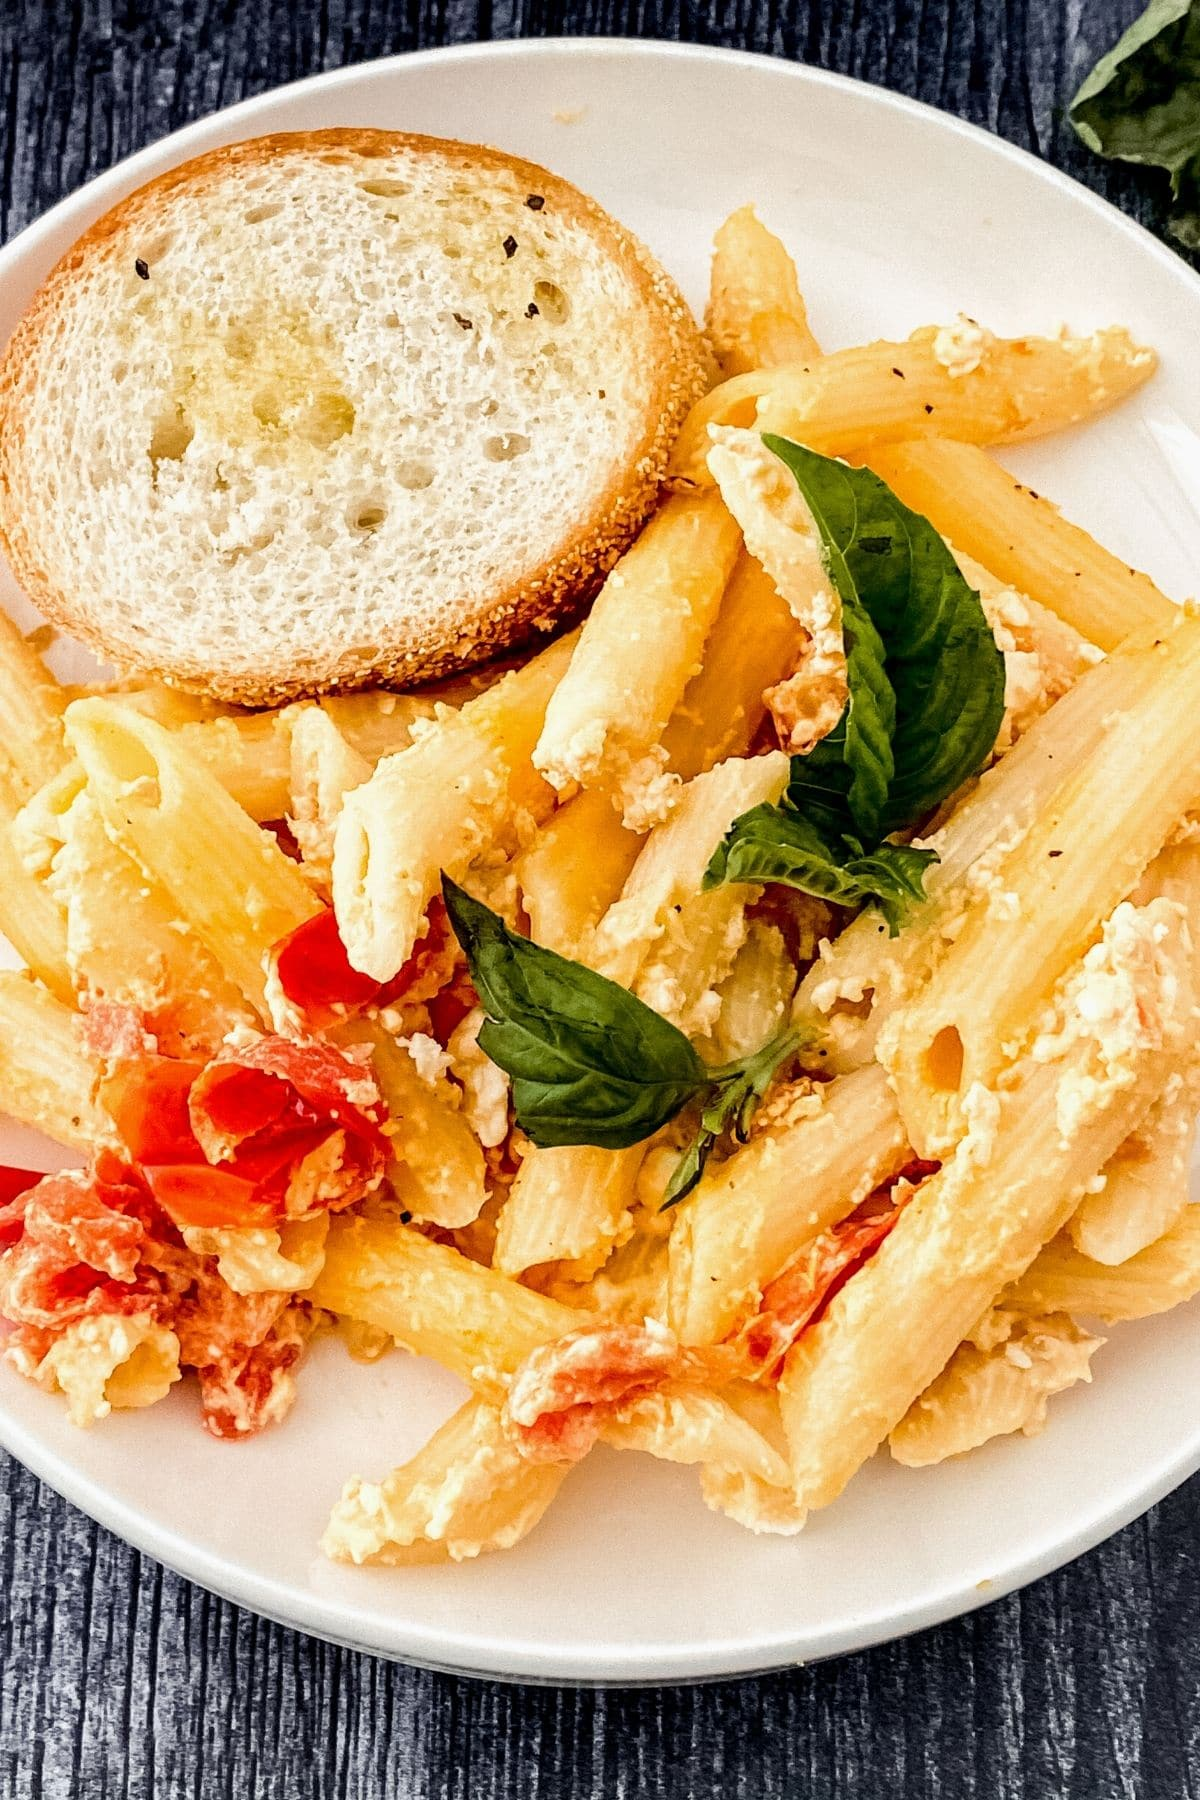 Baked feta pasta in white bowl with bread